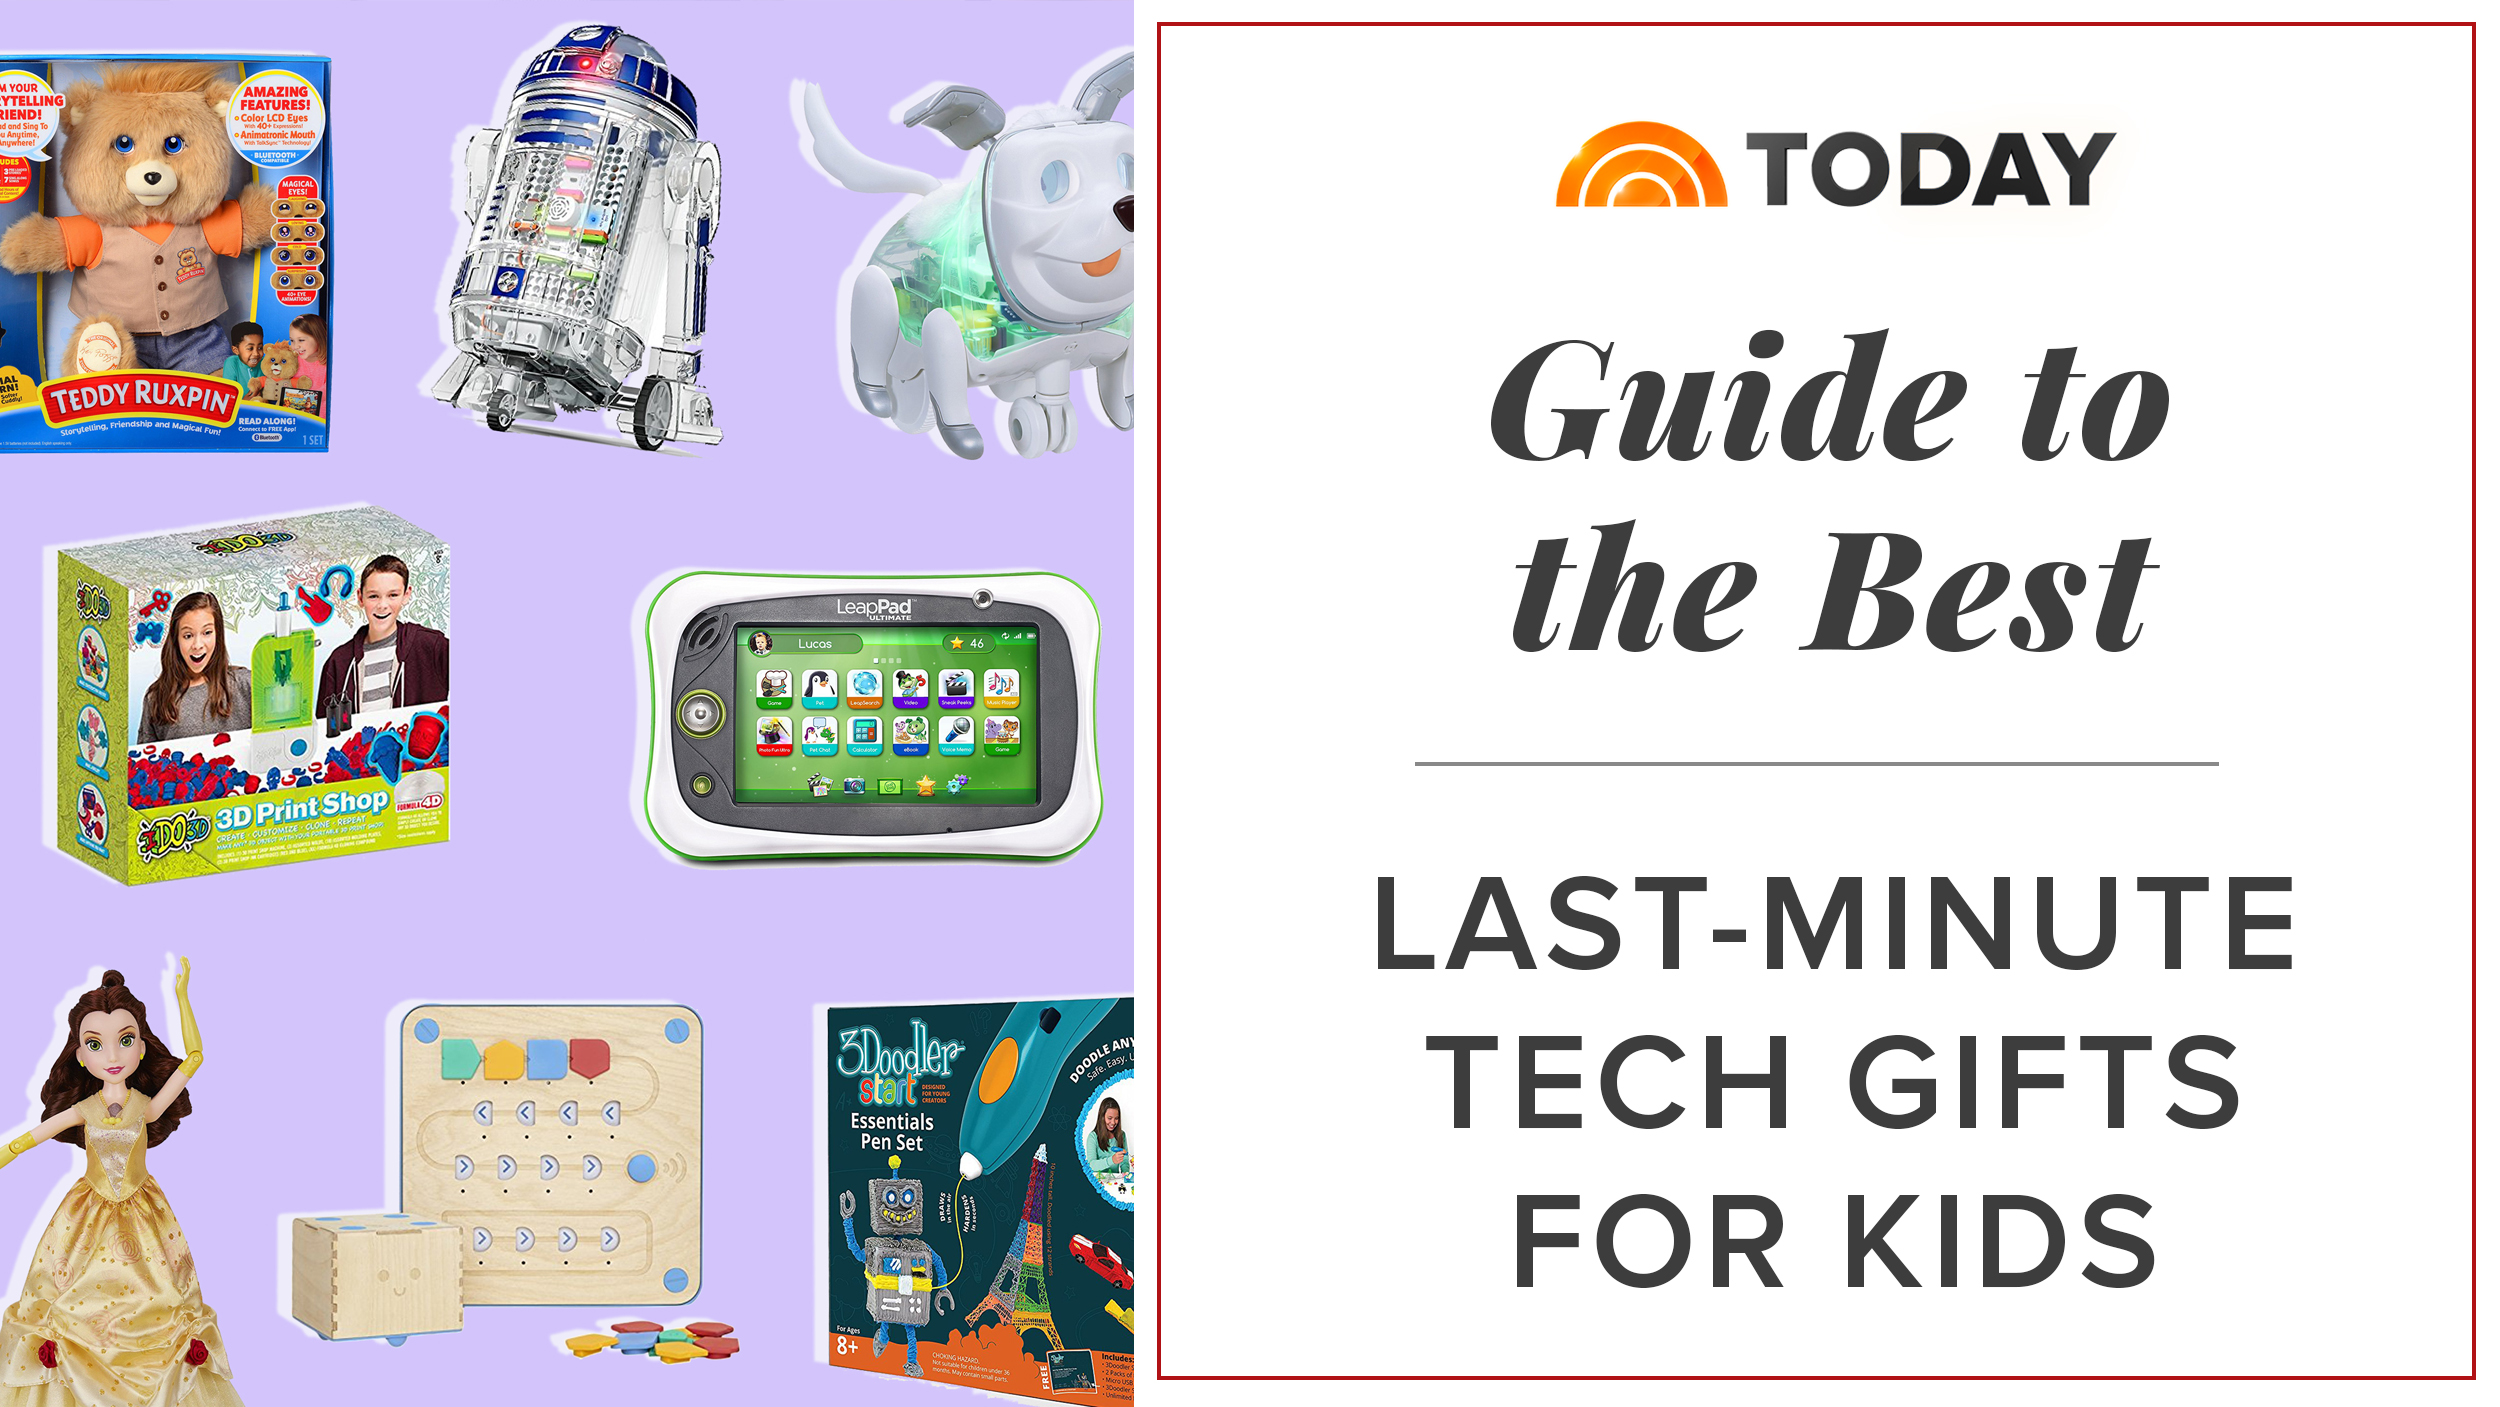 17 cutting edge tech ts for kids of all ages TODAY